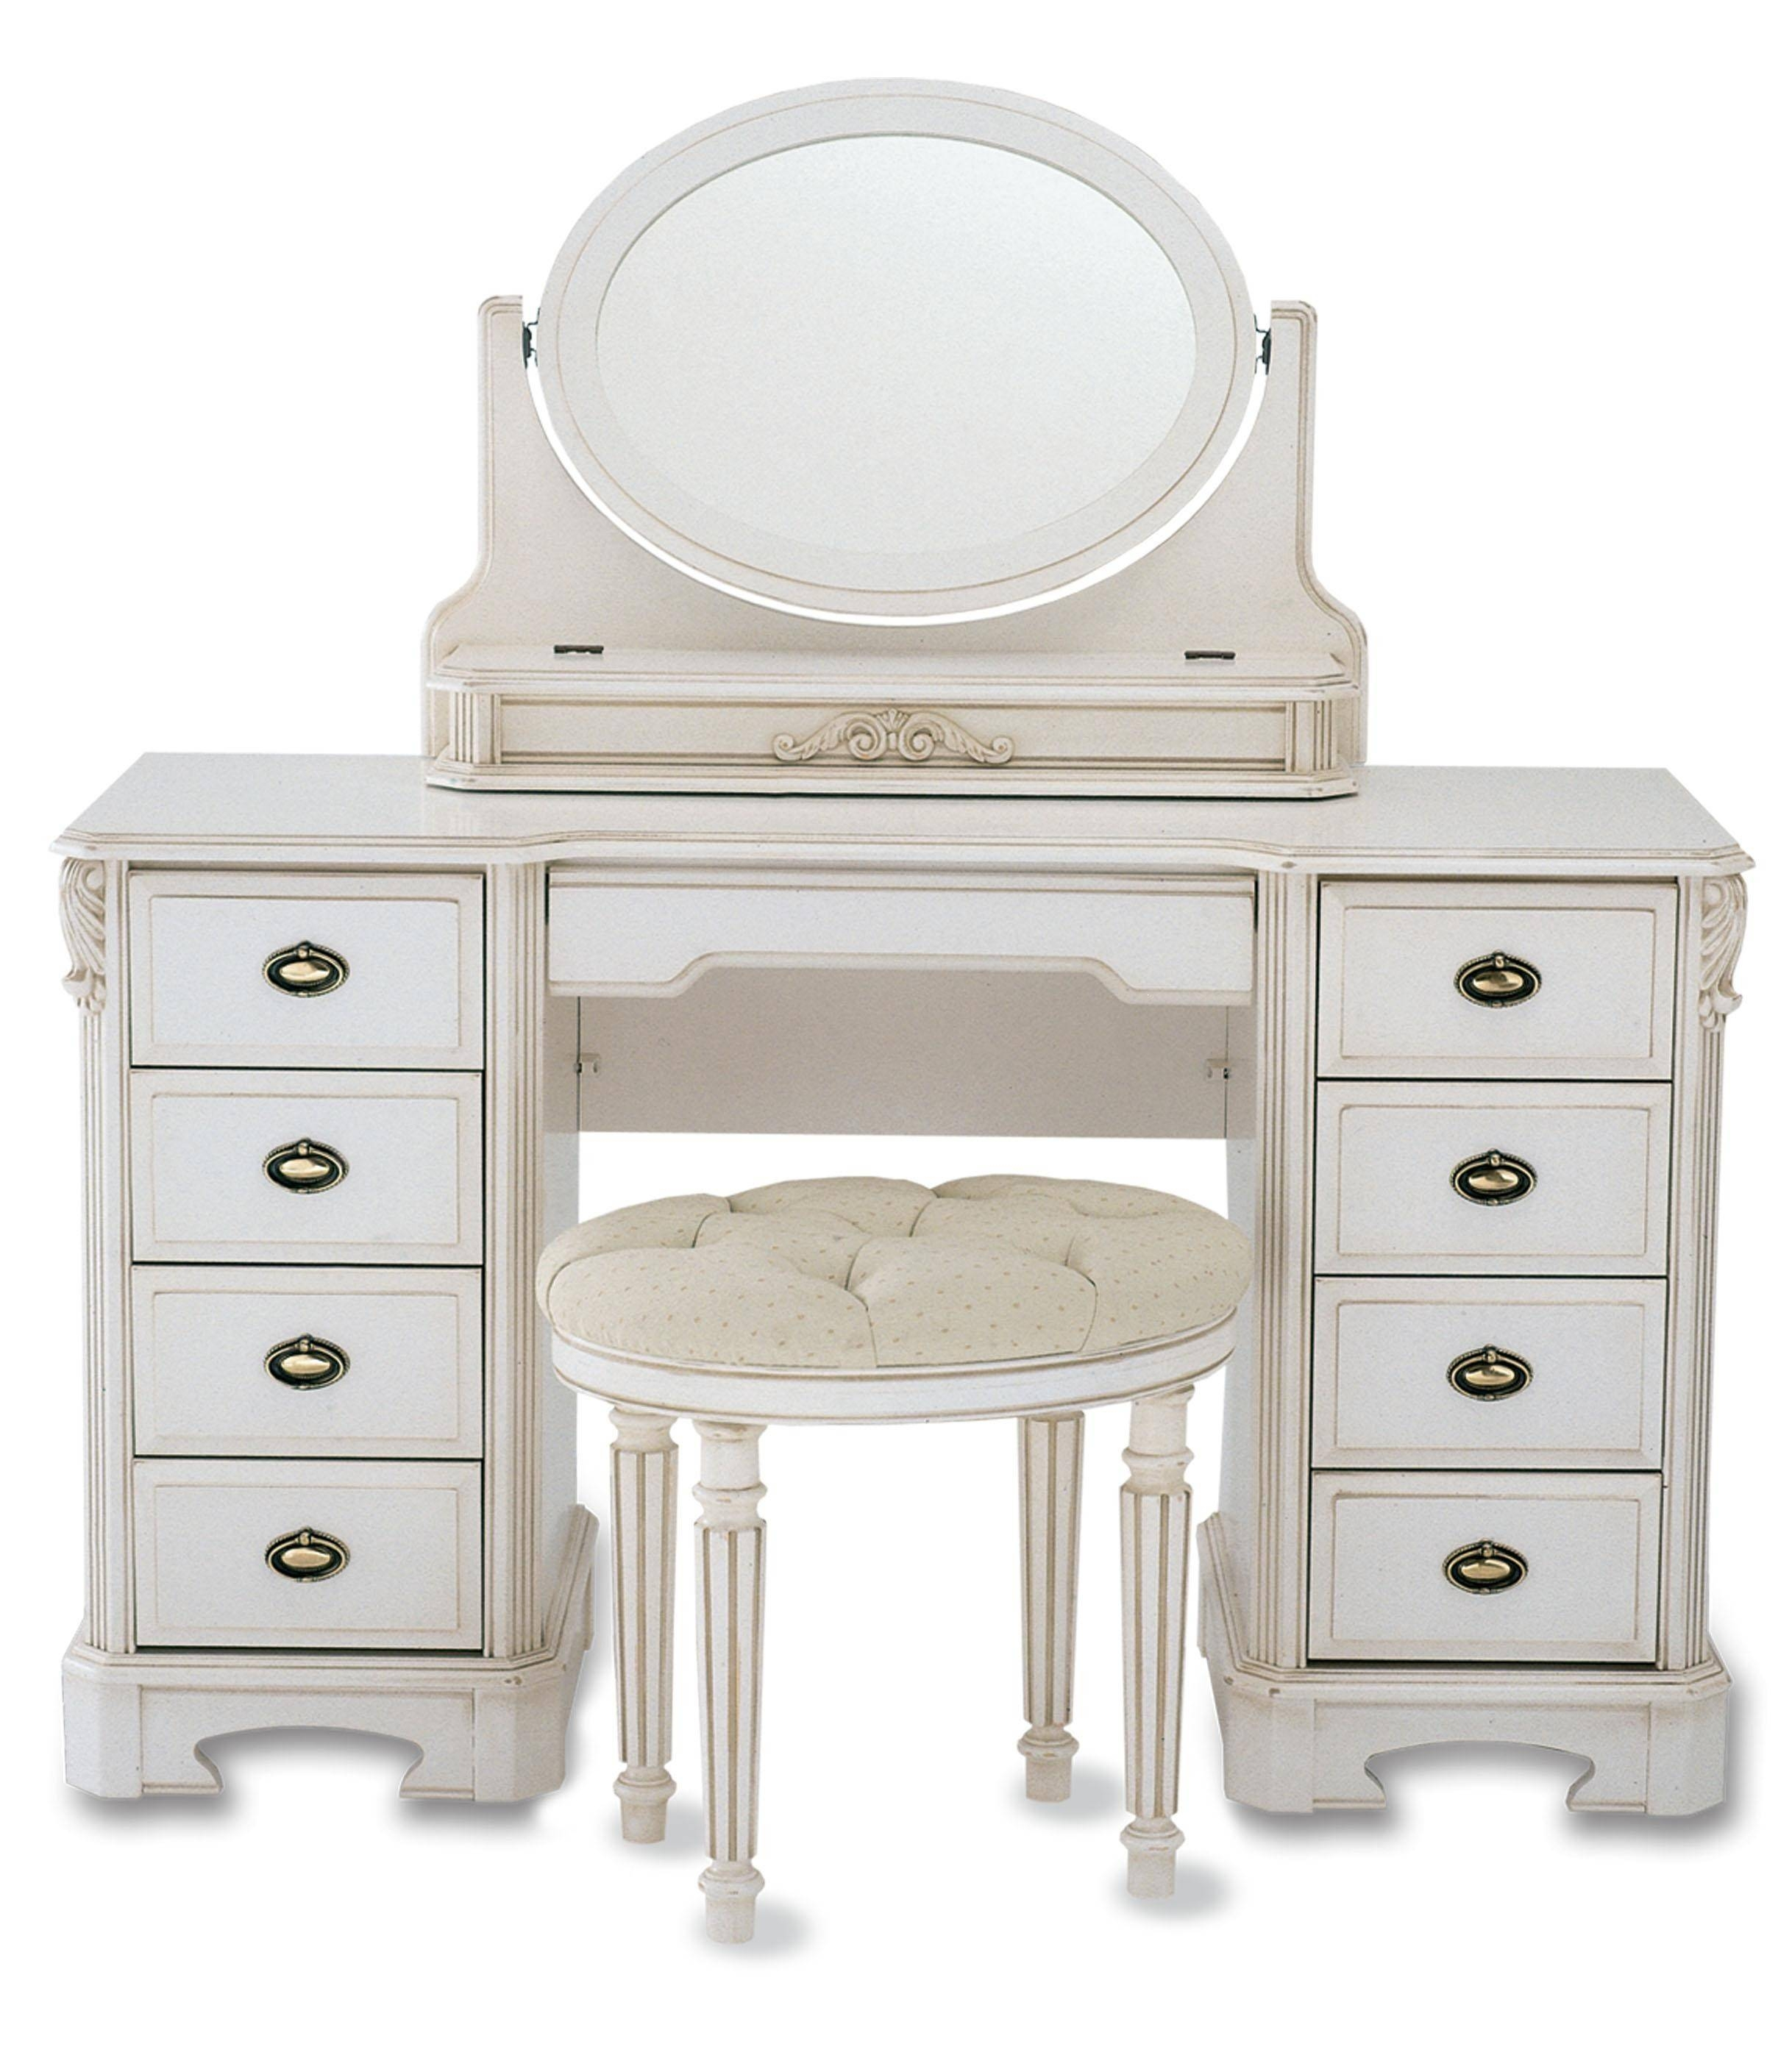 Furniture. Antique Vanities With Mirror For Glamorous Interior. Nu in Antique White Oval Mirrors (Image 7 of 15)